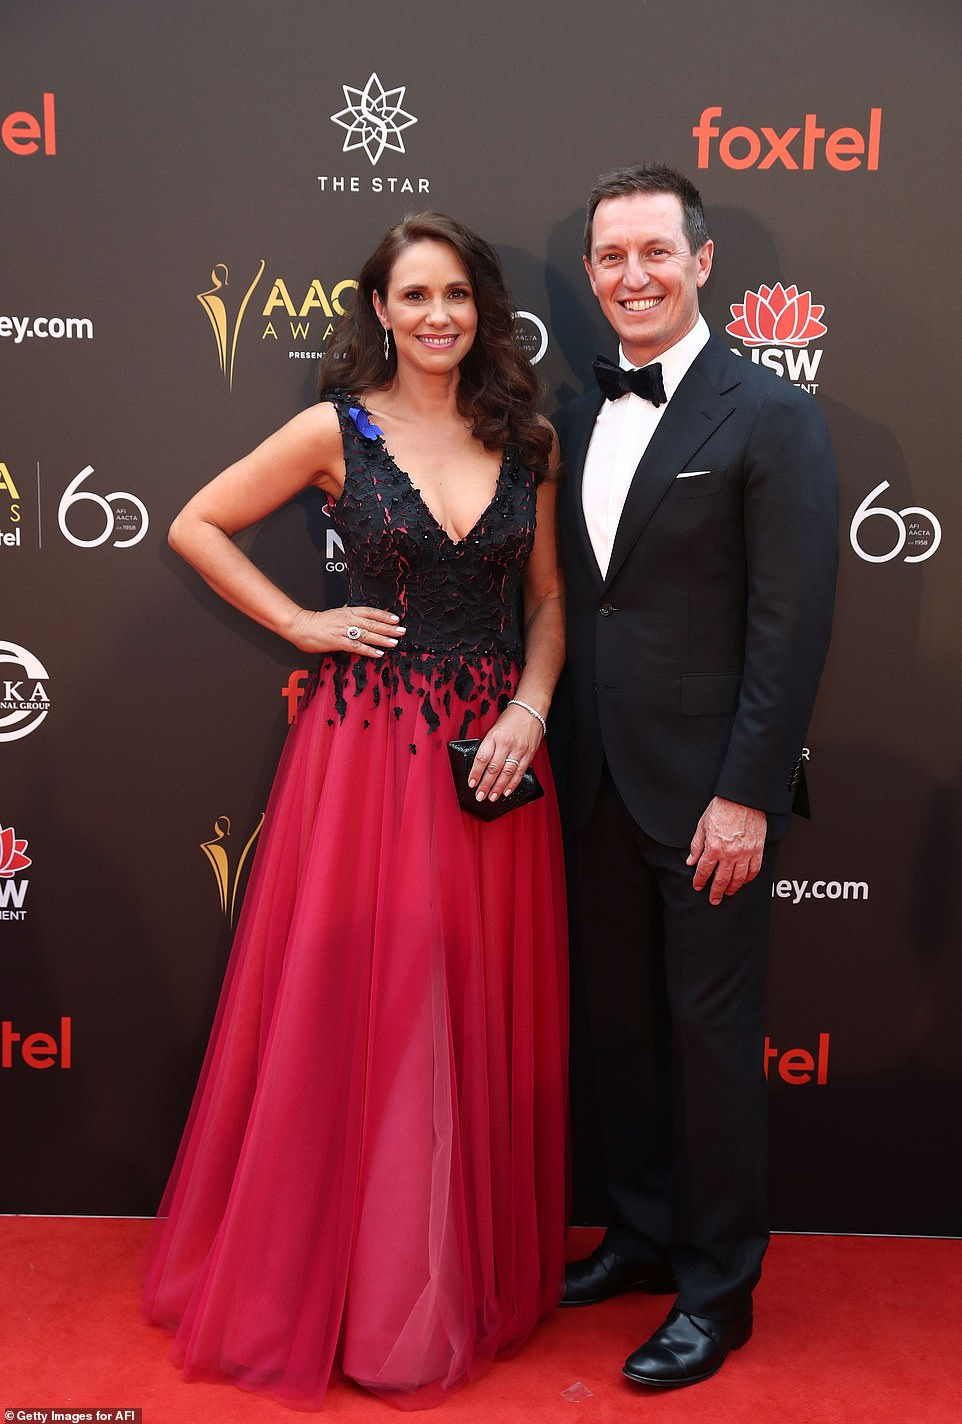 Date night! Rove McManus' wife Tasma Walton looked elegant in a pink and black princess-style gown while posing alongside her hubby